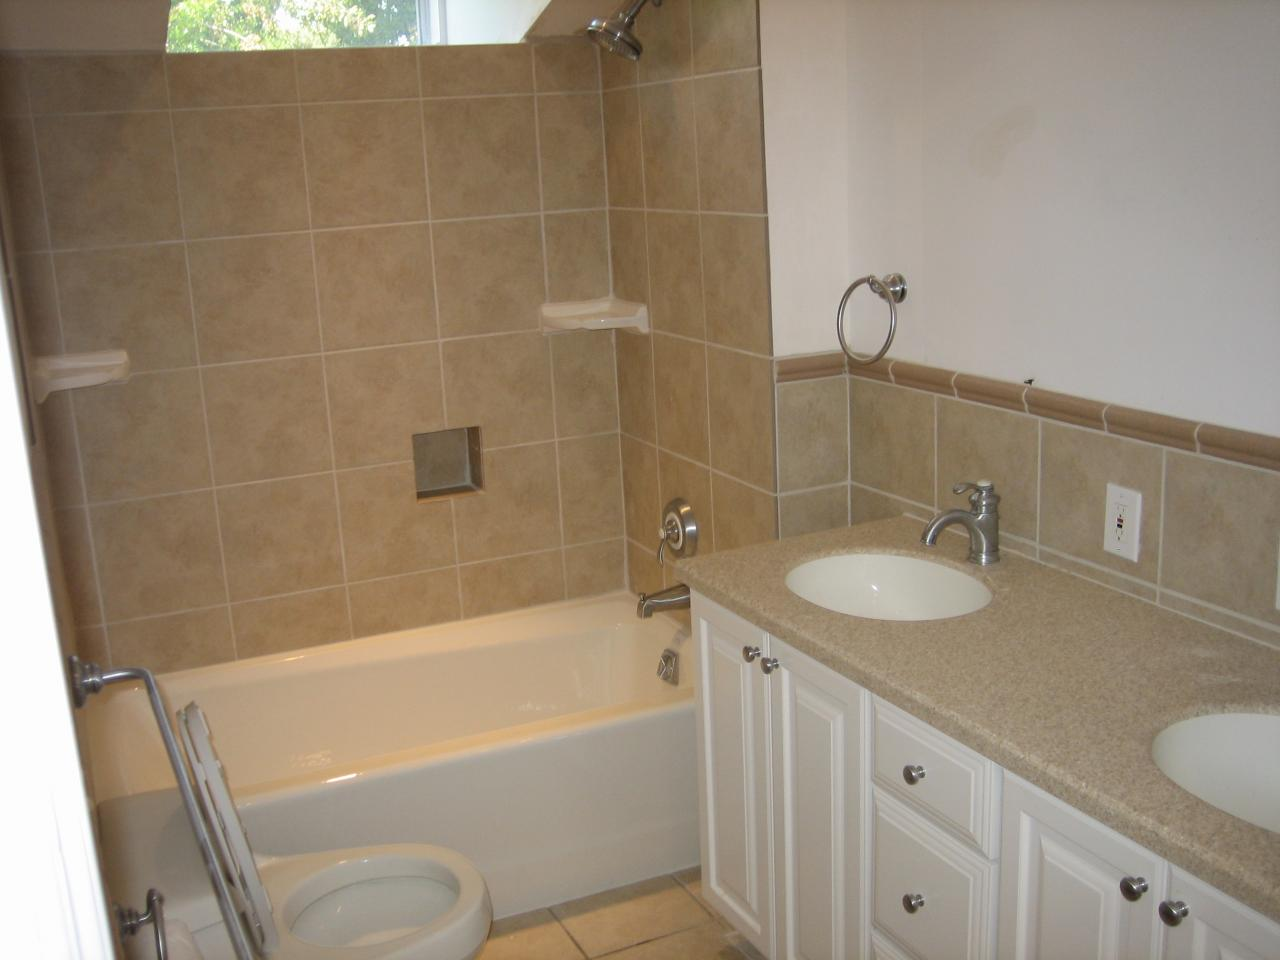 bmo kitchen and bath renovation bathroom remodeling phasesin home